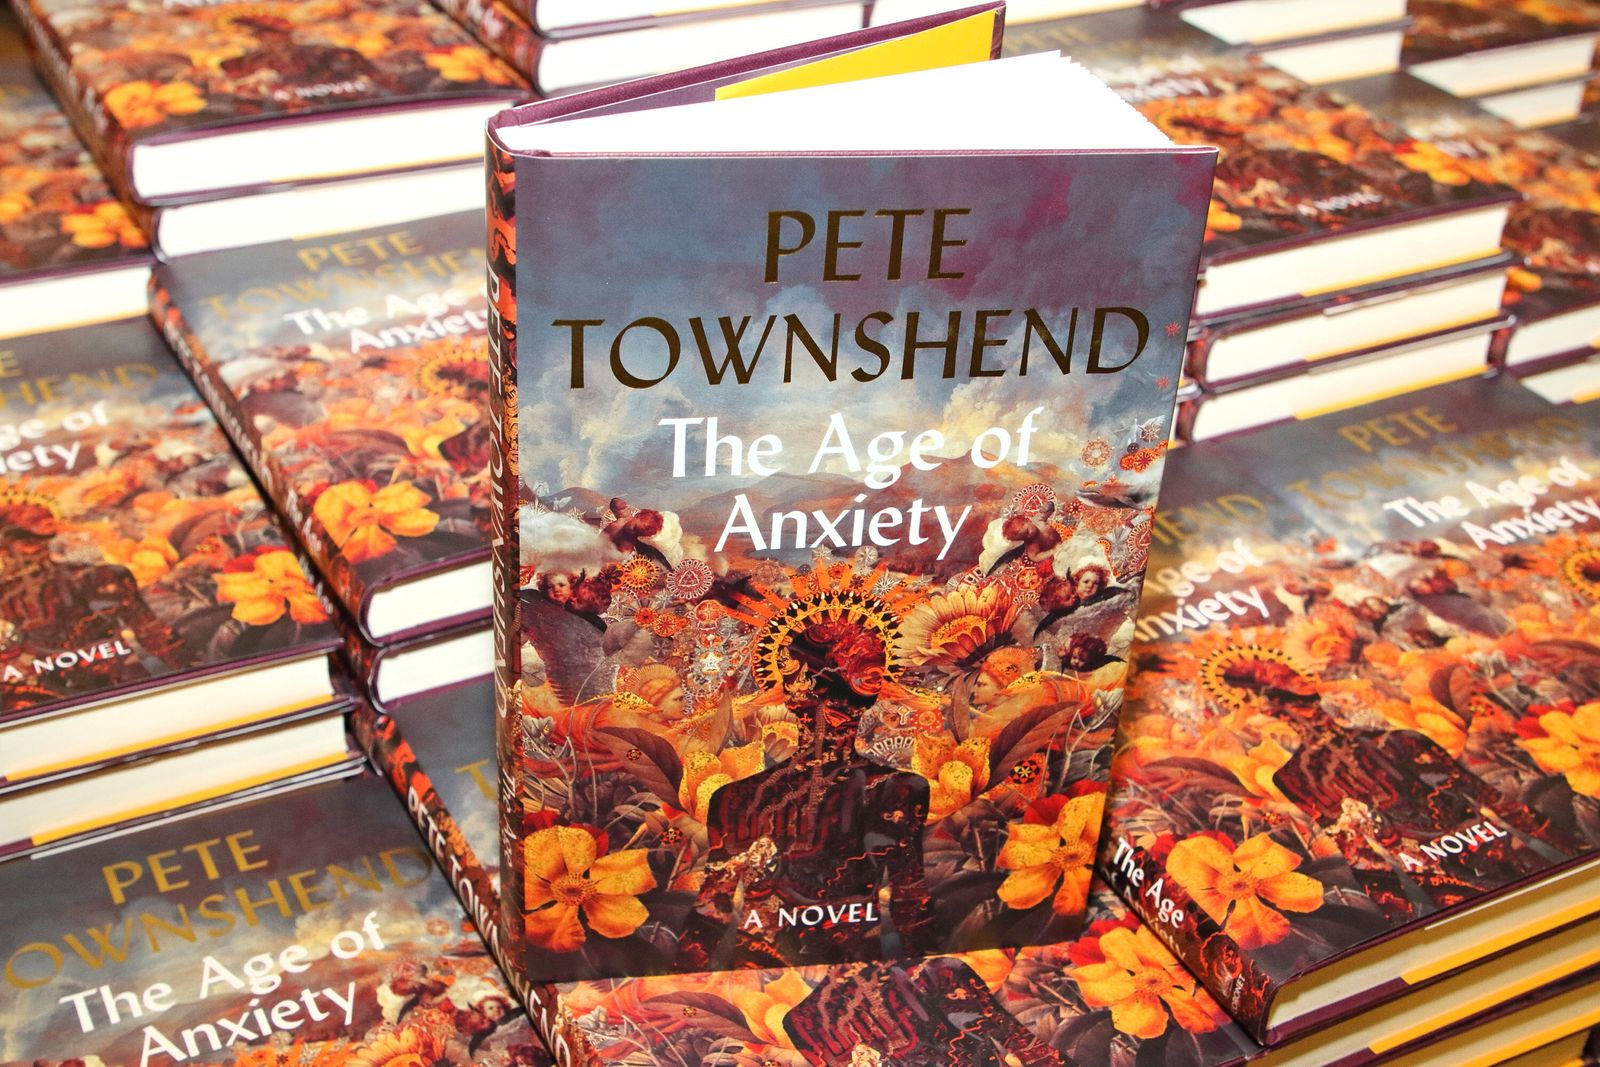 Pete Townshend - November 5, 2019, London, United Kingdom: Pete Townshend new novel, The Age of Anxiety, book is being displayed at Wate